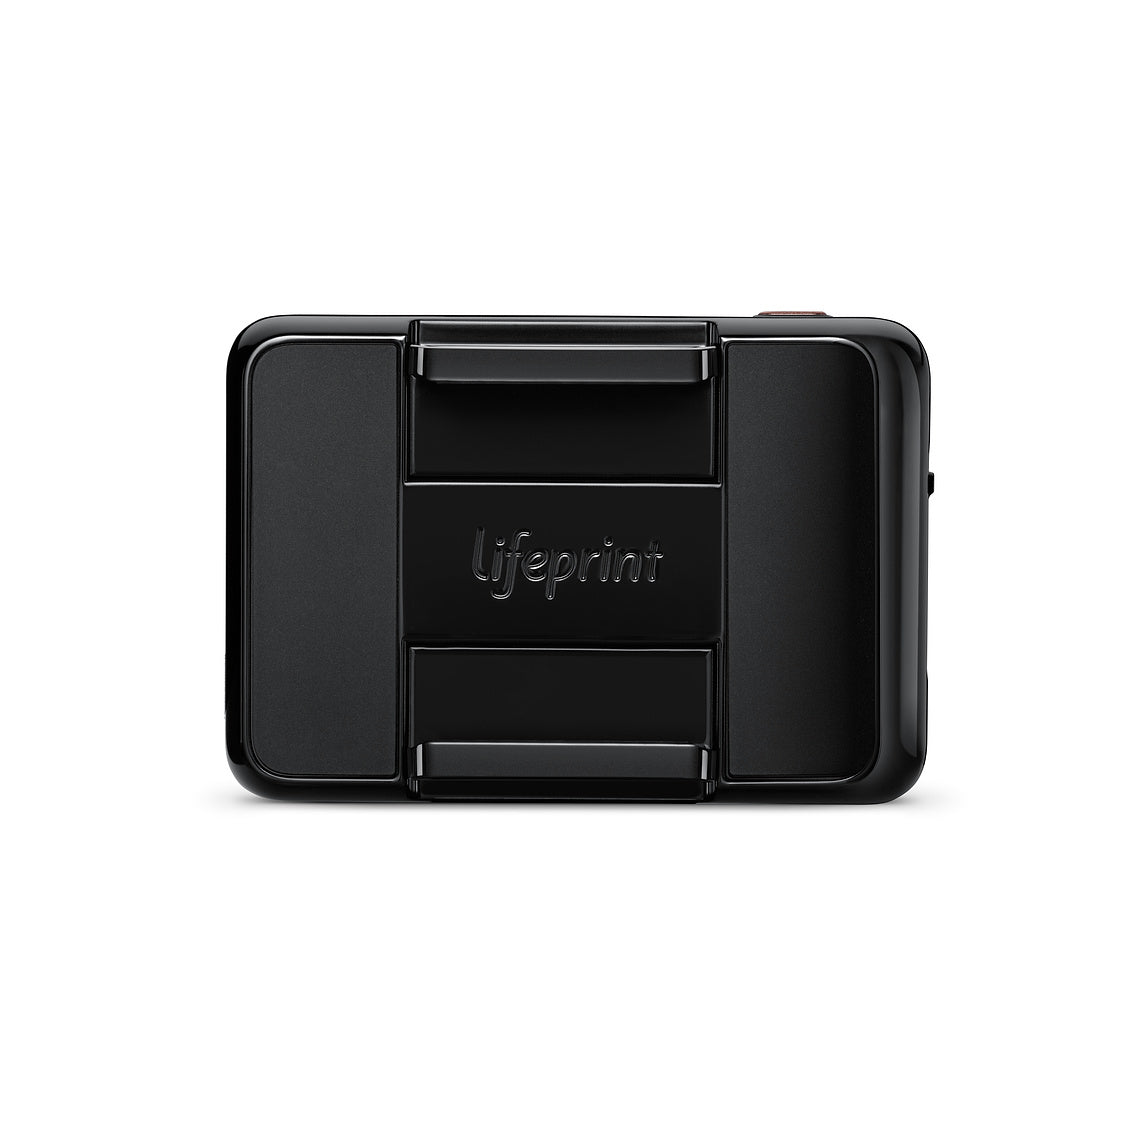 Lifeprint -  2x3 Instant Print Camera / ガジェット - FOX STORE